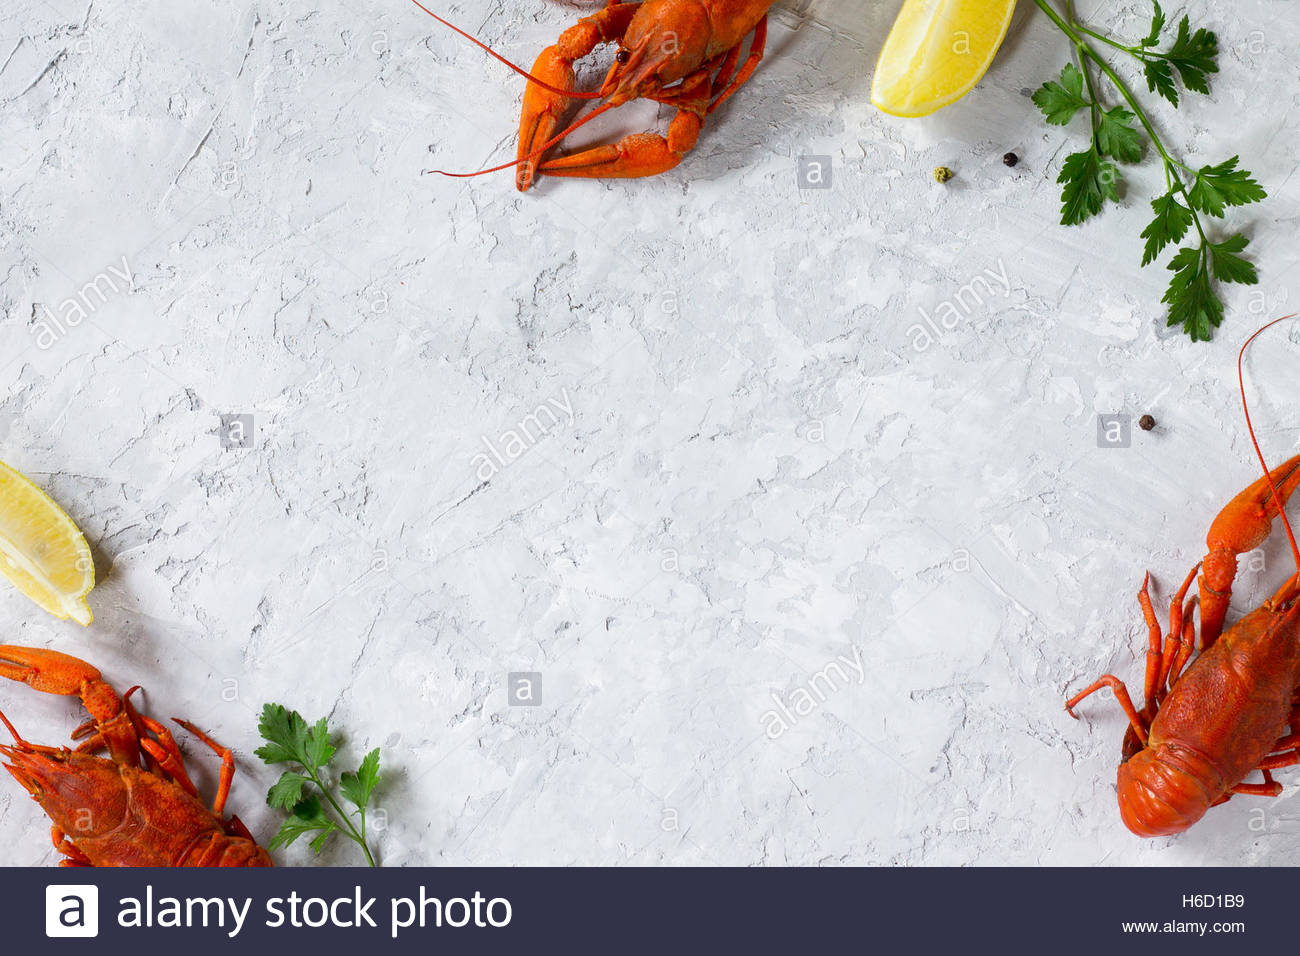 Boiled crawfish lemon and parsley on a concrete background Food 1300x956